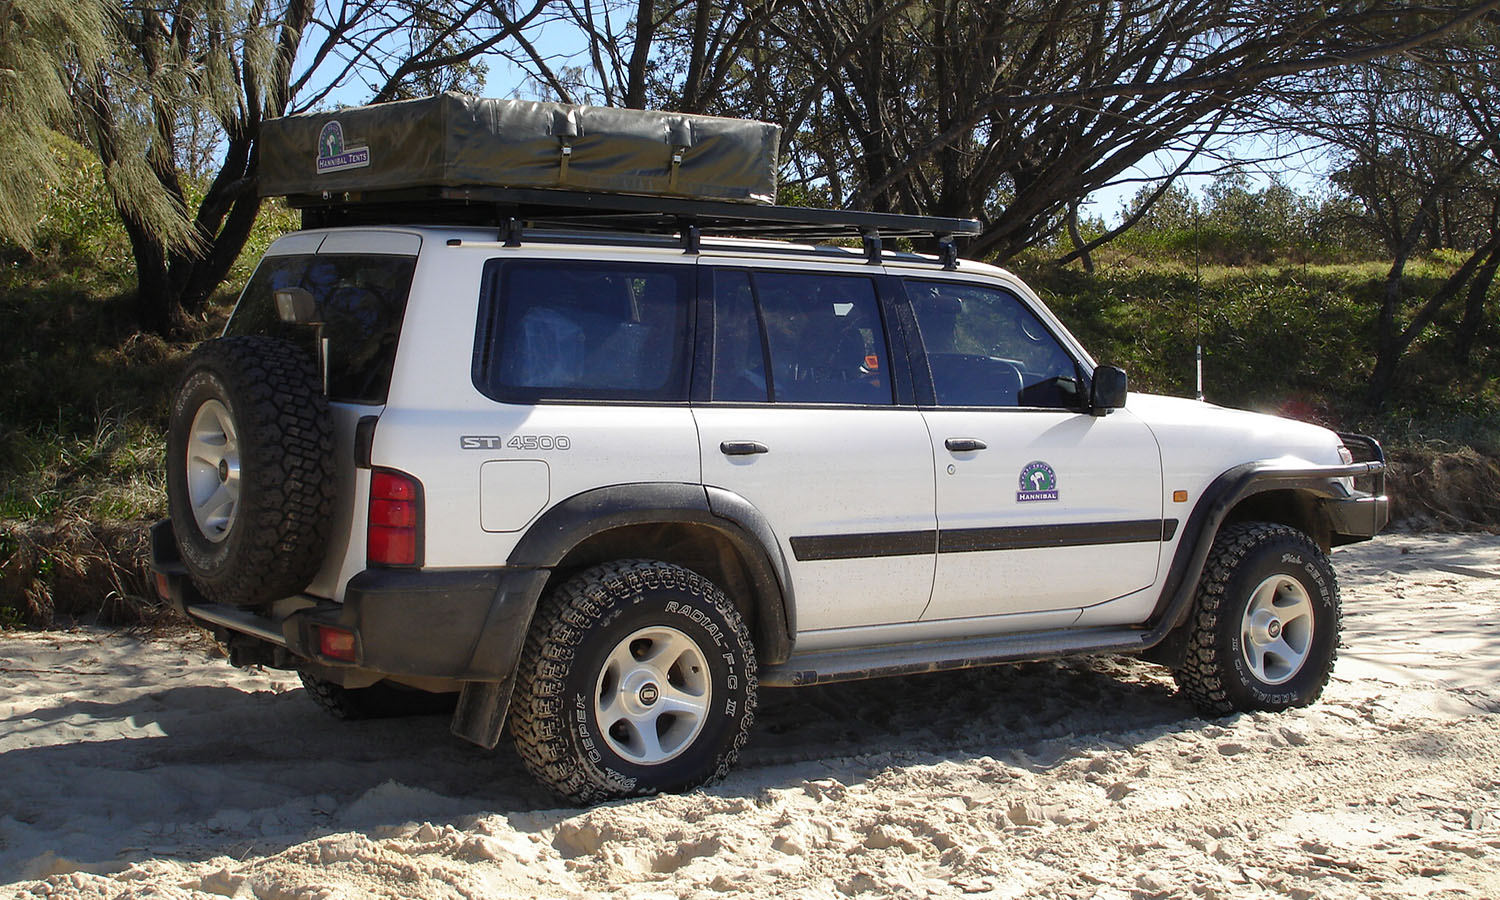 Hannibal Roof Racks for Nissan Patrol GU